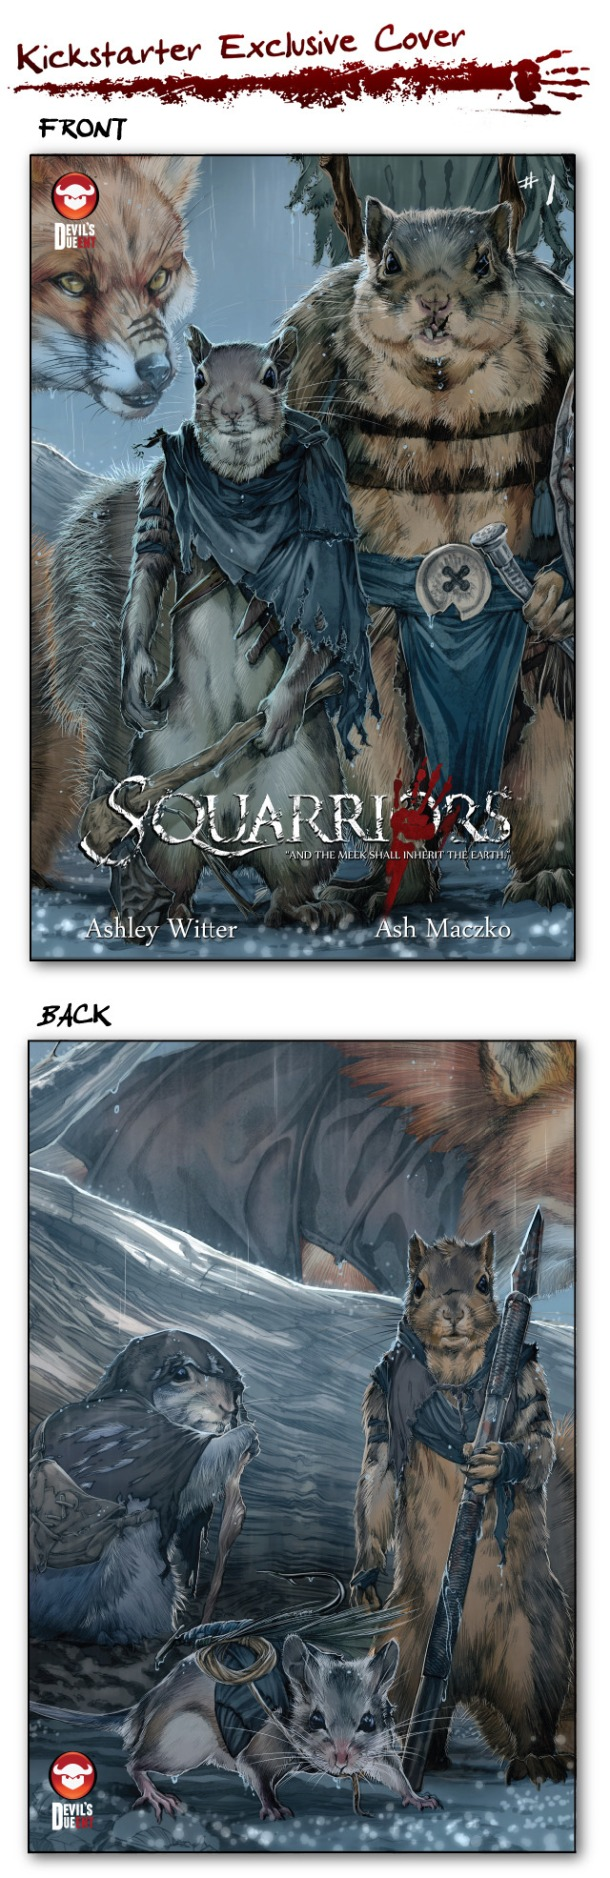 Squarriors #1 KS Exclusive Alt Cover. Art by Ashley Witter